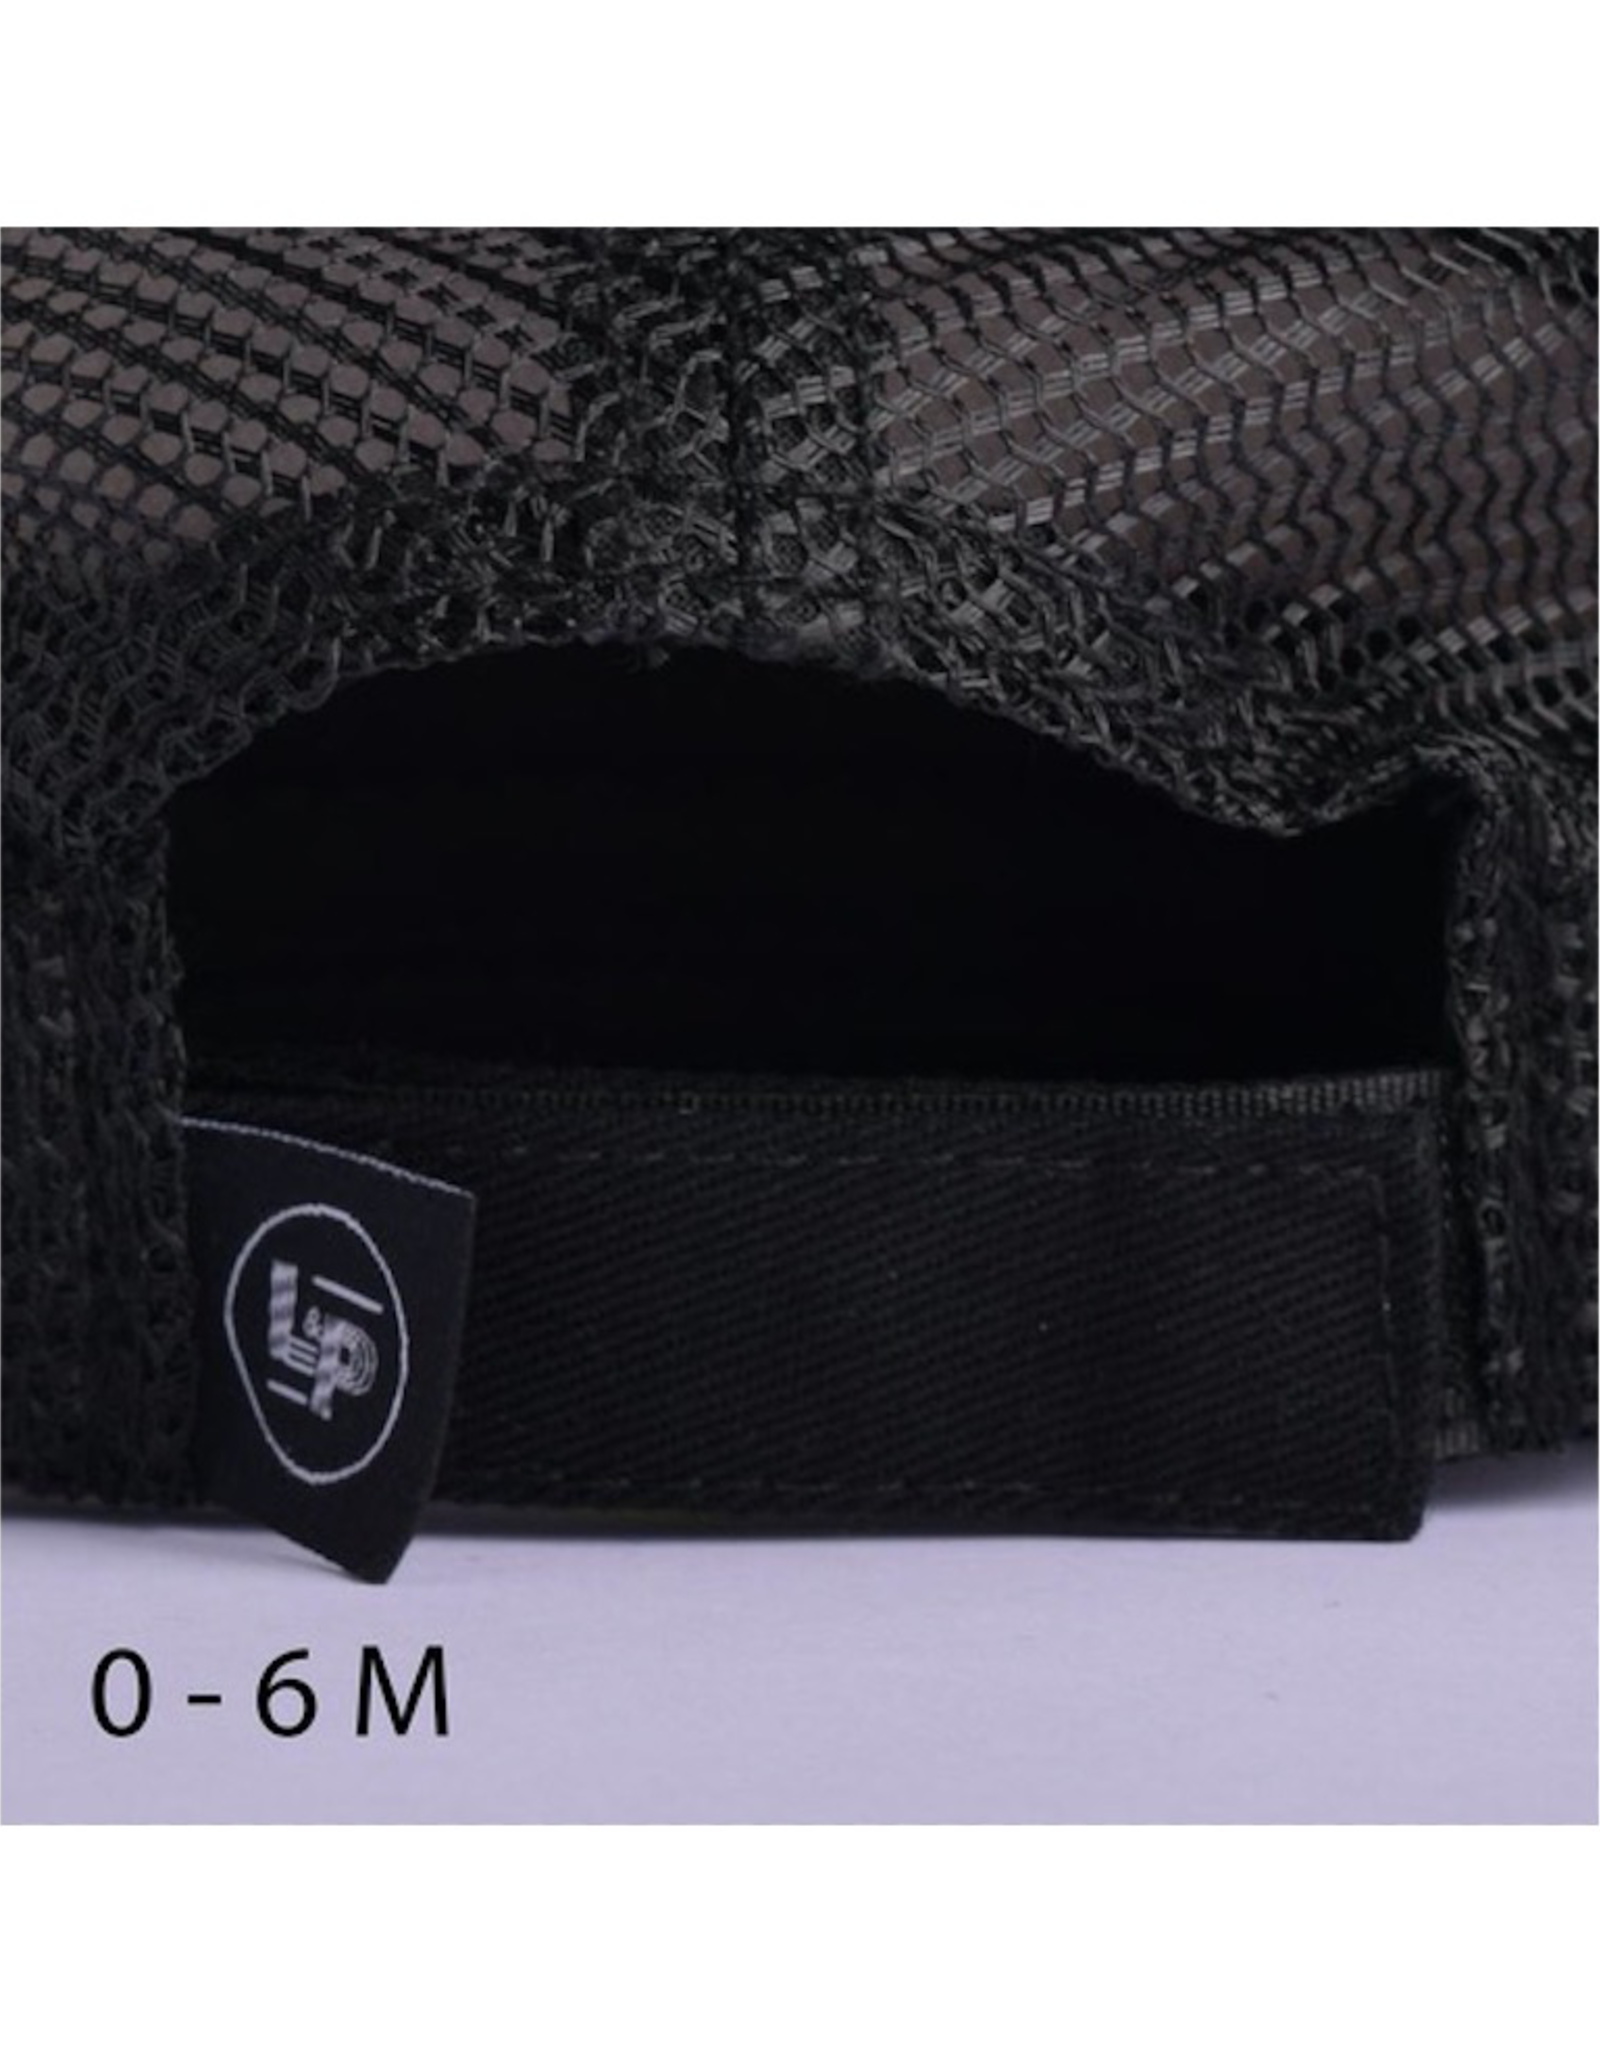 L&P Apparel All Black Orleans Snapback Trucker Cap